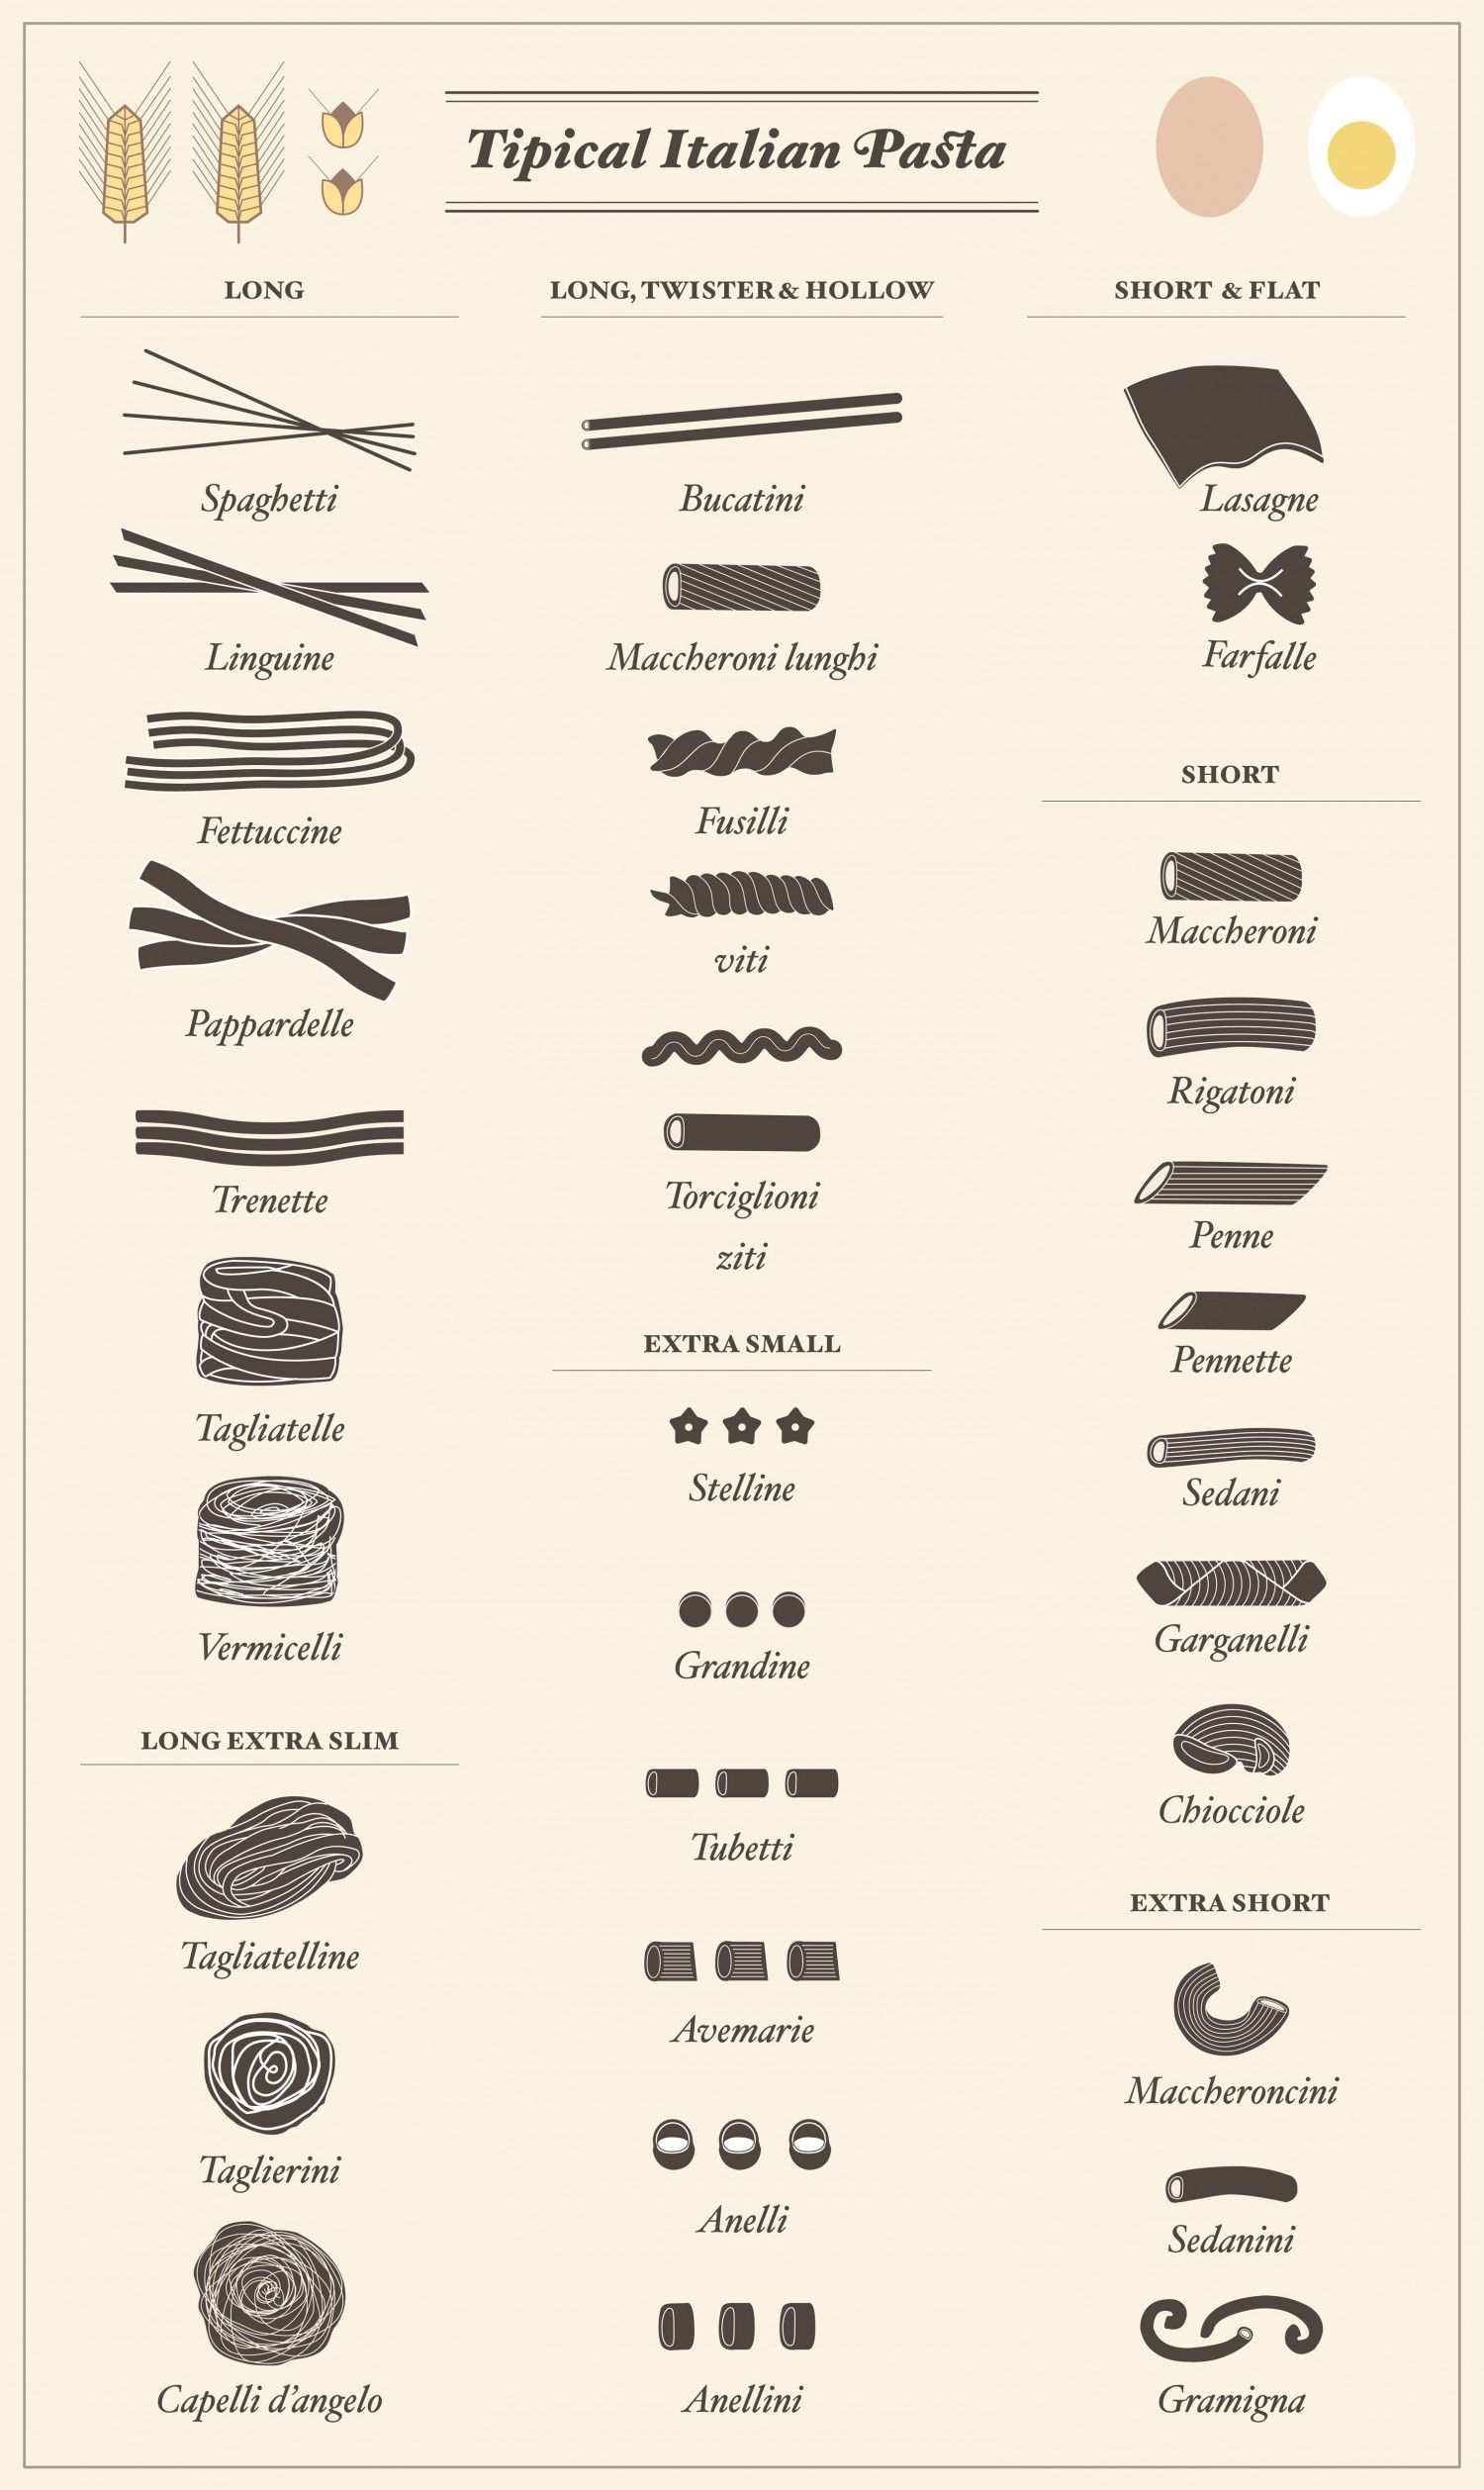 6 Definitive Guides To All The Names Of Pasta Pasta Restaurants Pasta Shapes Pasta Types